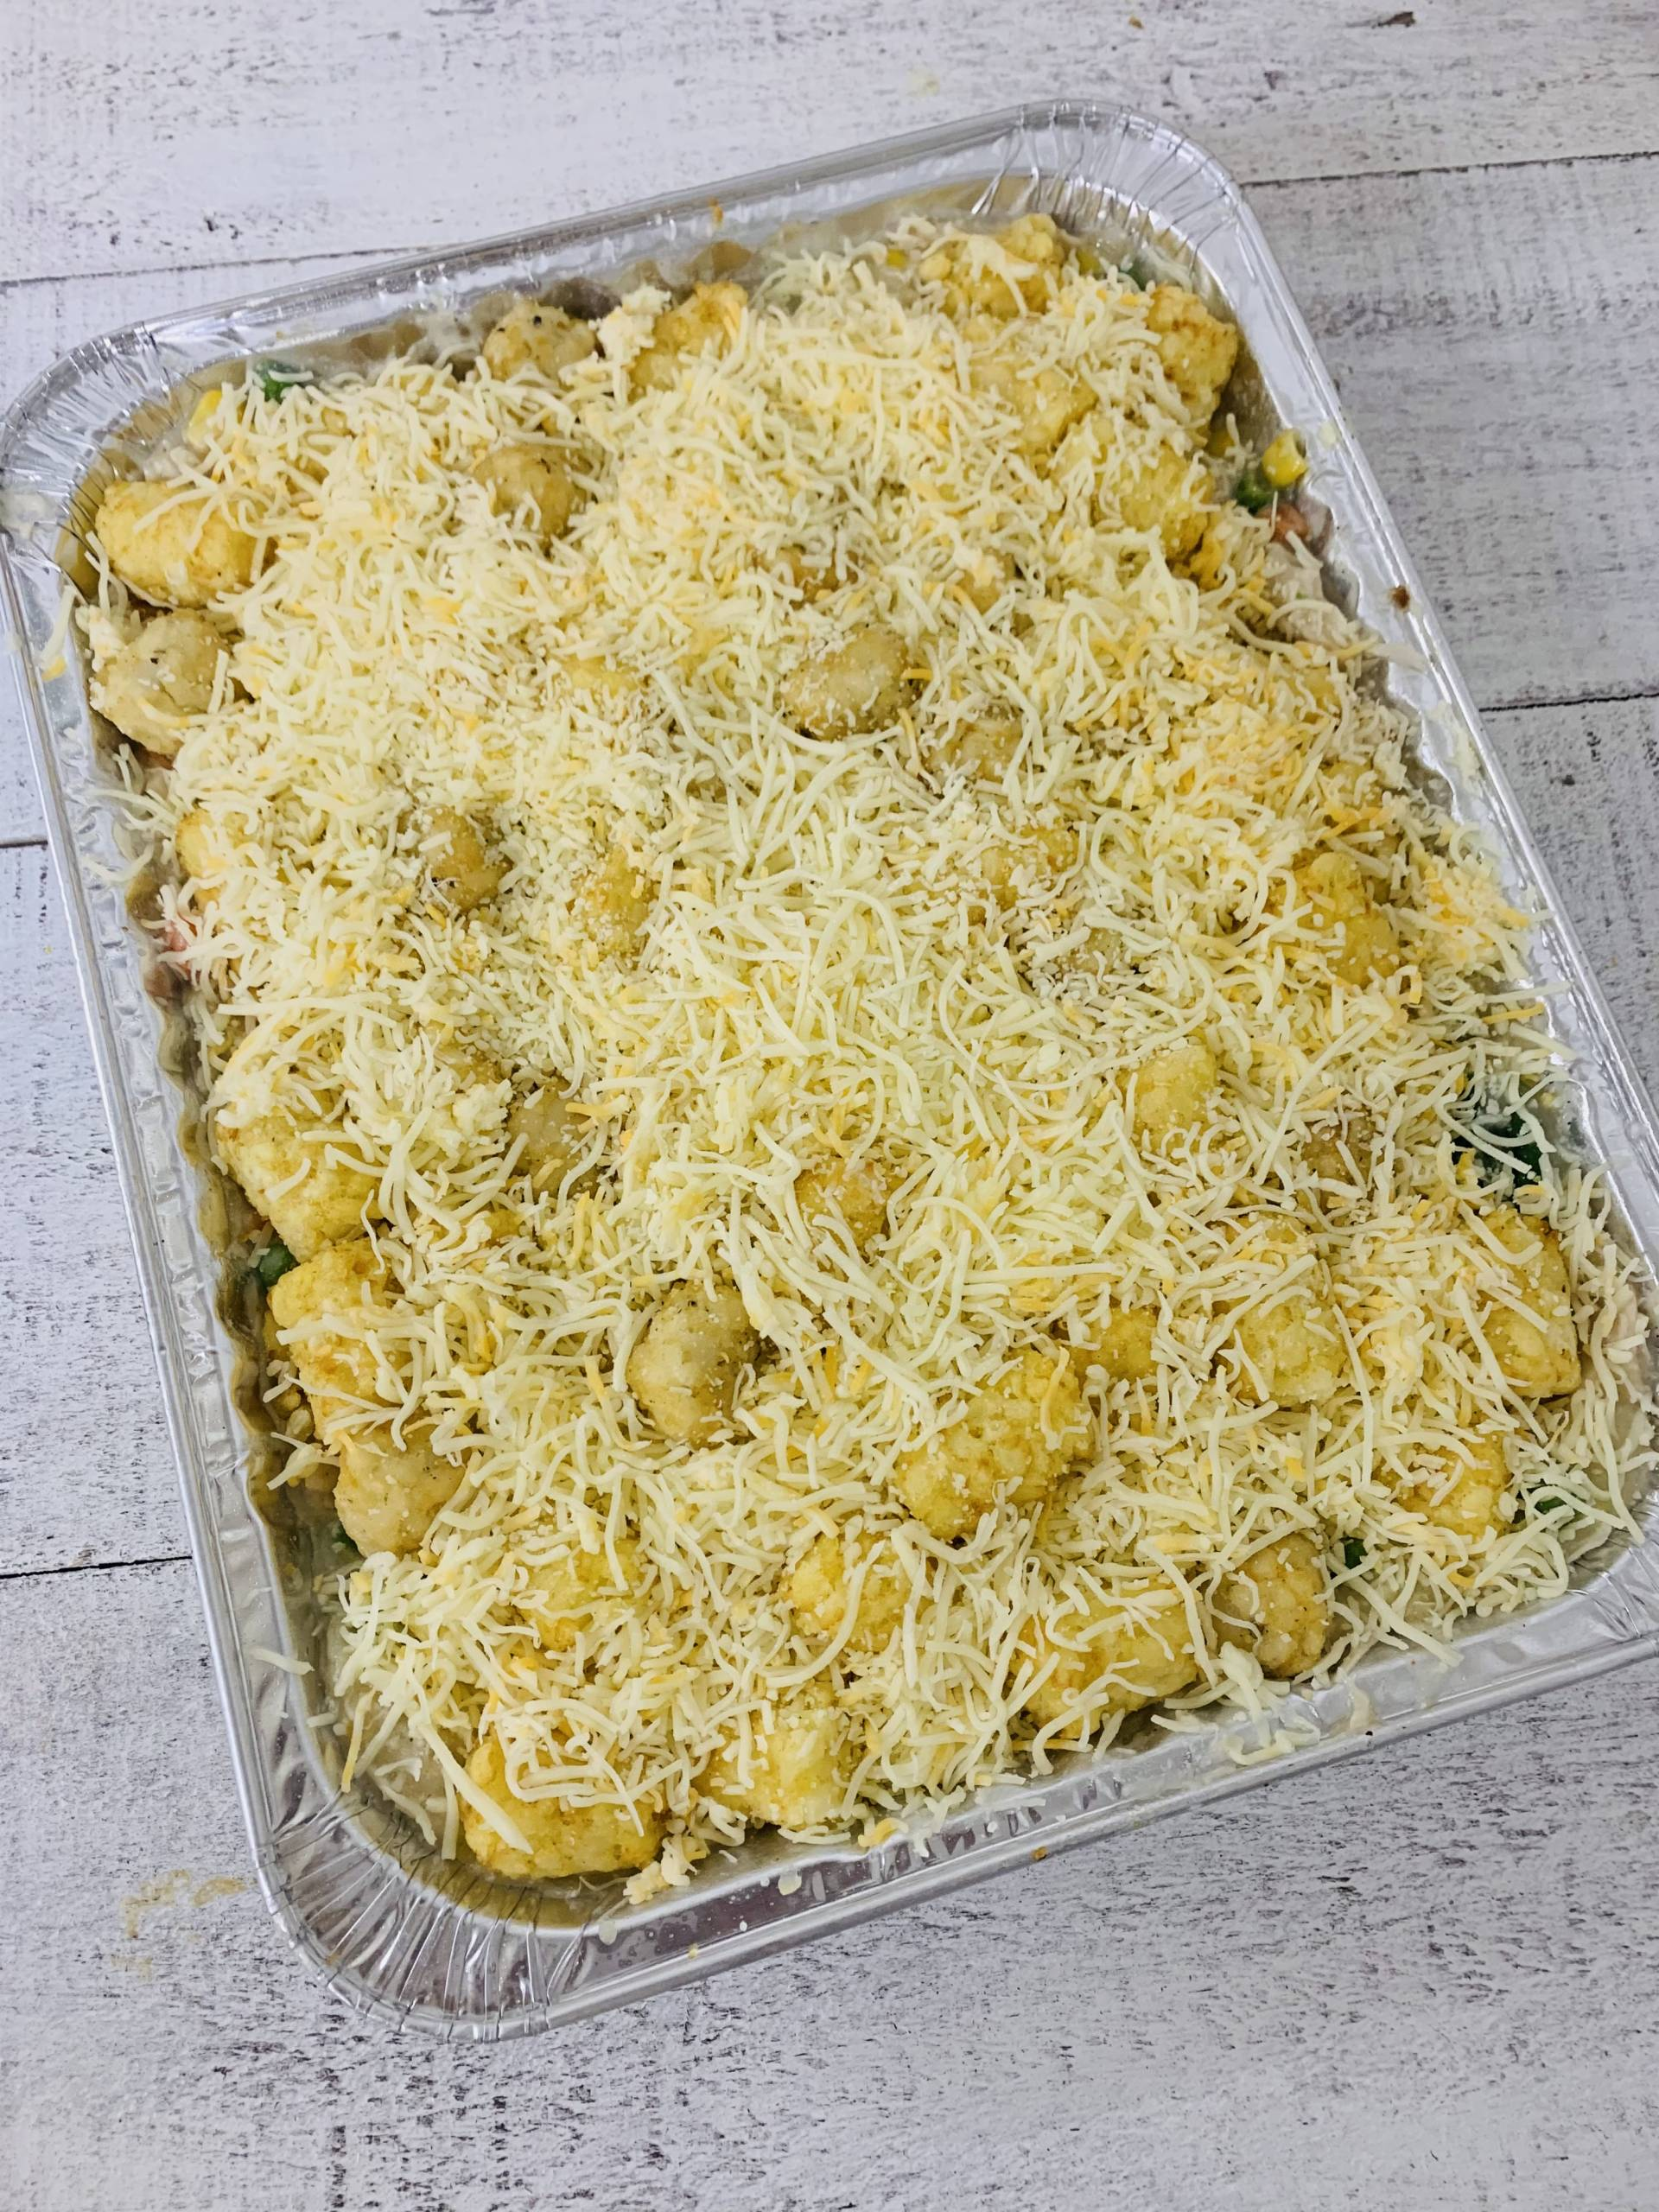 Tater Tot Casserole Beef Family Meal (Feeds 6-8)